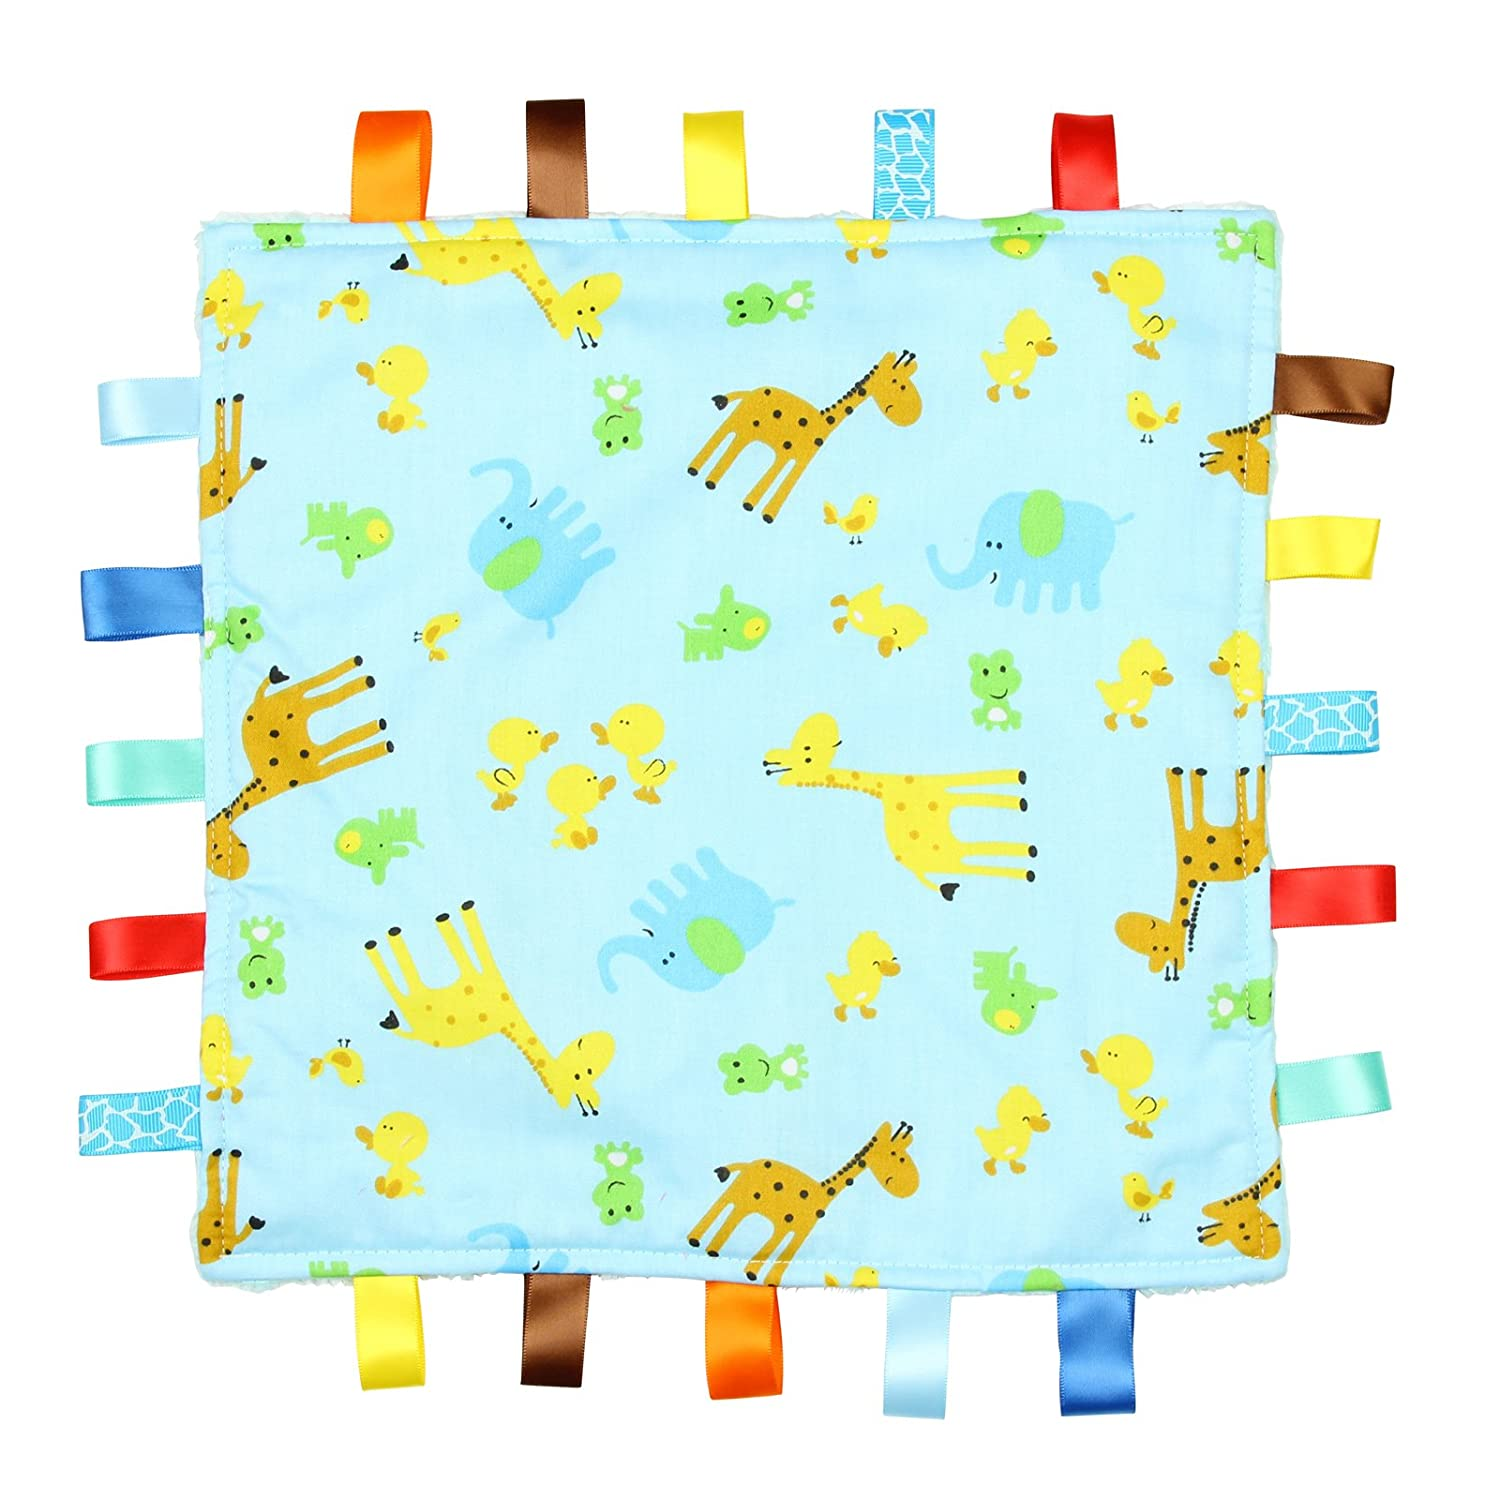 Blue Baby Tag, Taggy Blanket - Blue with Giraffe, Elephant and Chick Animal Tag, Taggy Blanket - Plain Blue Textured Underside For the Love of Leisure